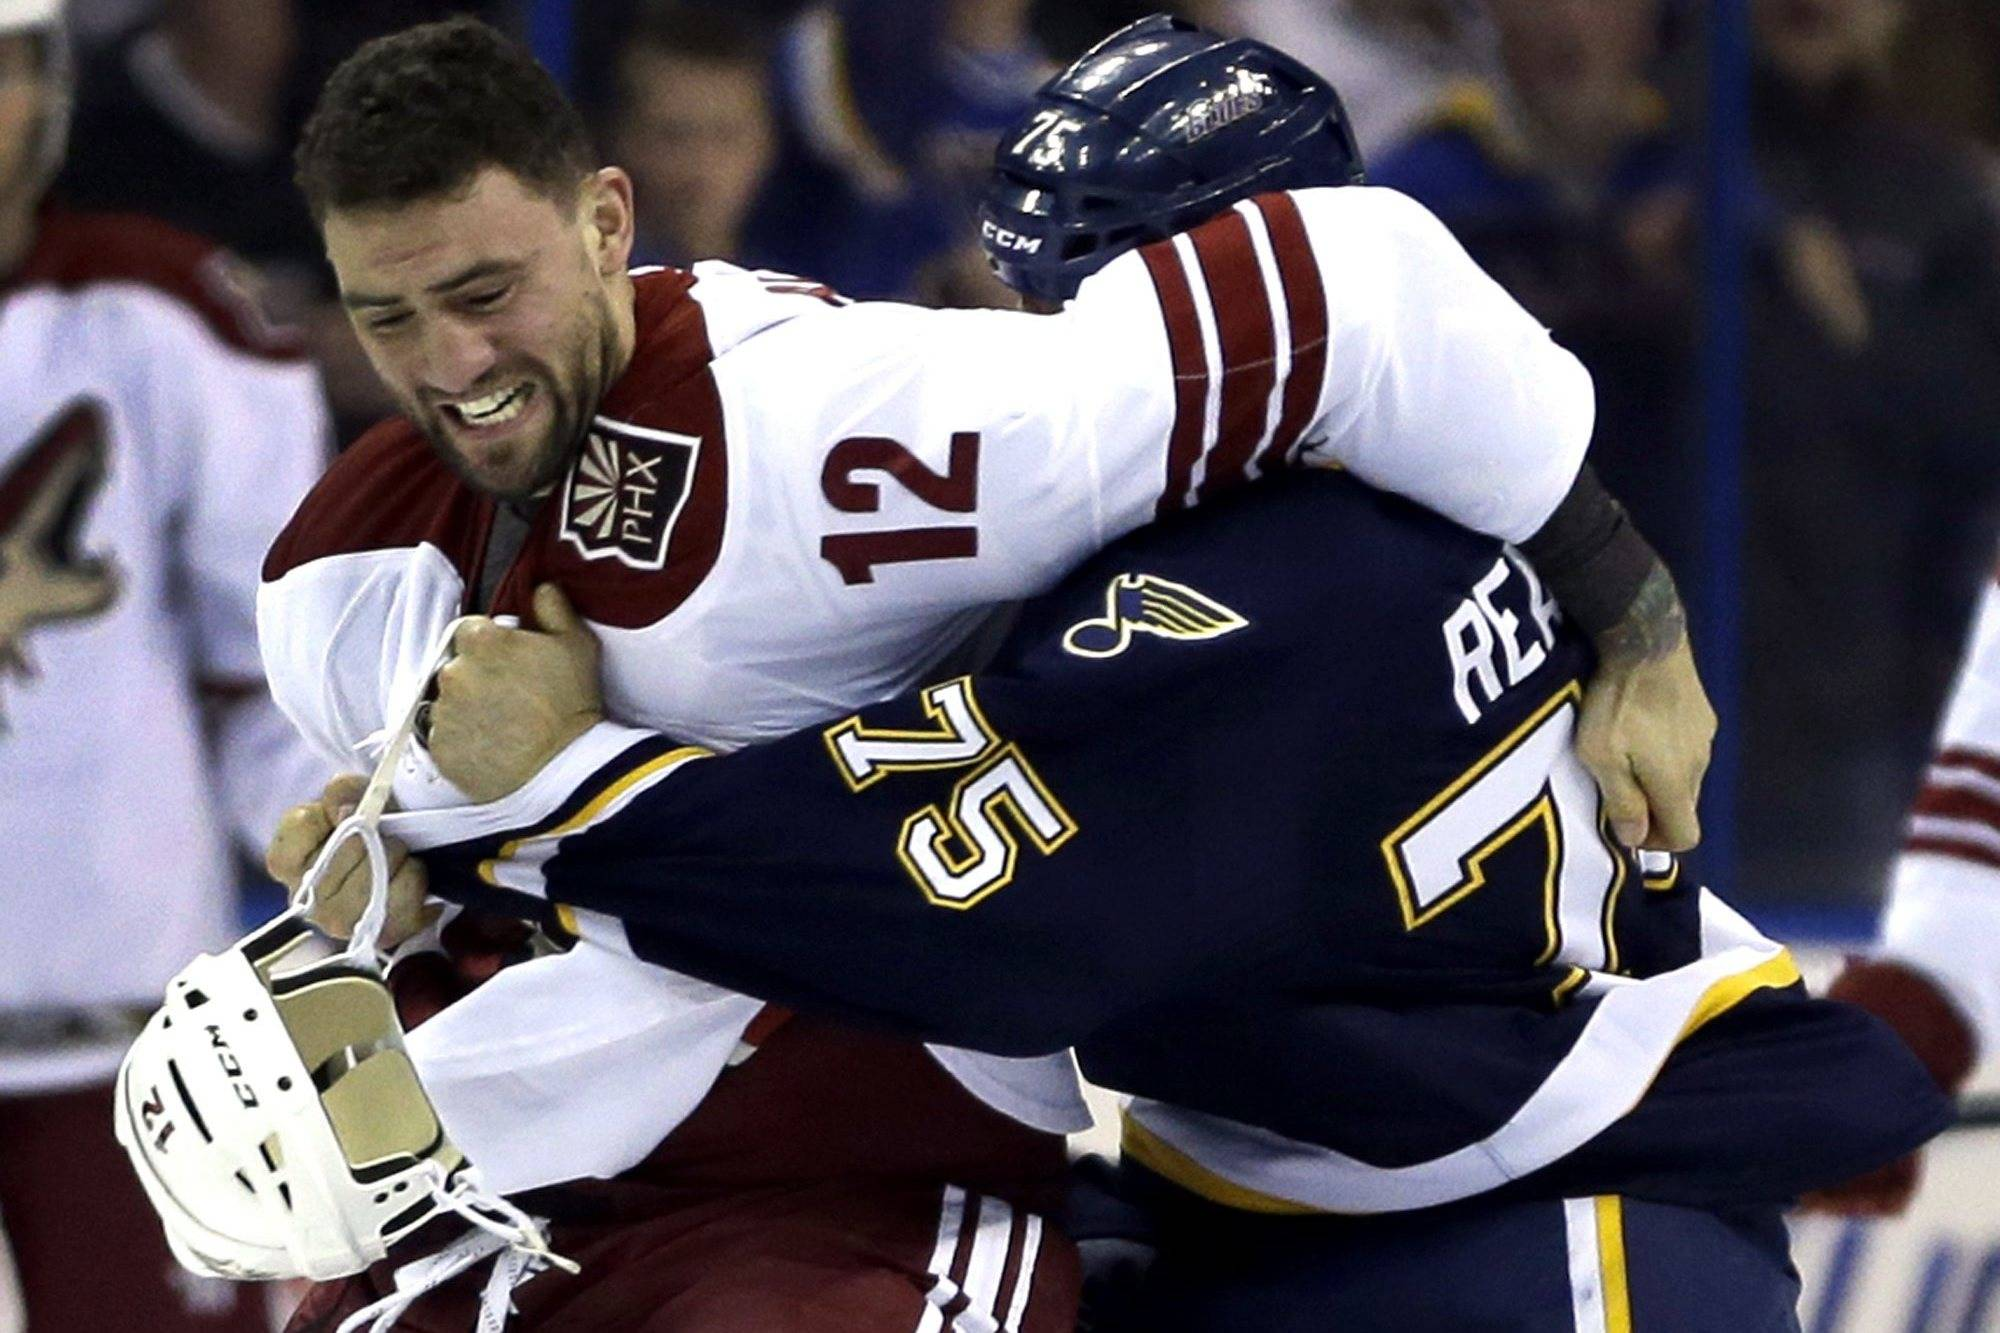 Phoenix Coyotes' Paul Bissonnette (12) and St. Louis Blues' Ryan Reaves fight during the first period of an NHL hockey game on Thursday, April 18, 2013, in St. Louis. (AP Photo/Jeff Roberson)